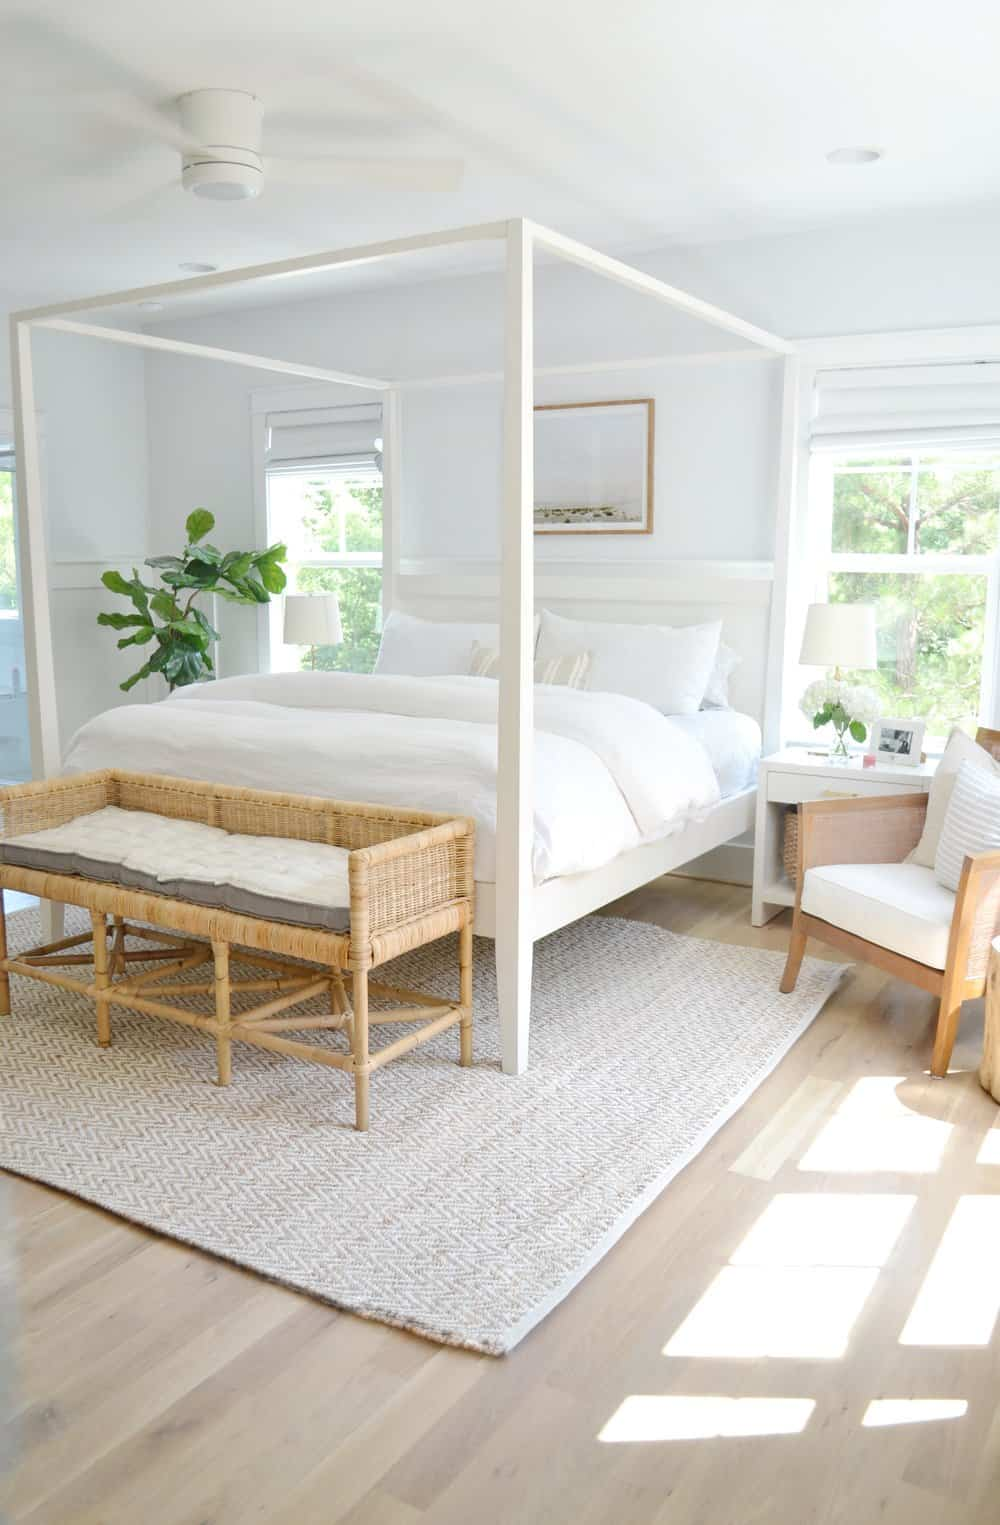 Serena and lily shore bench and a bed in a bedroom for review